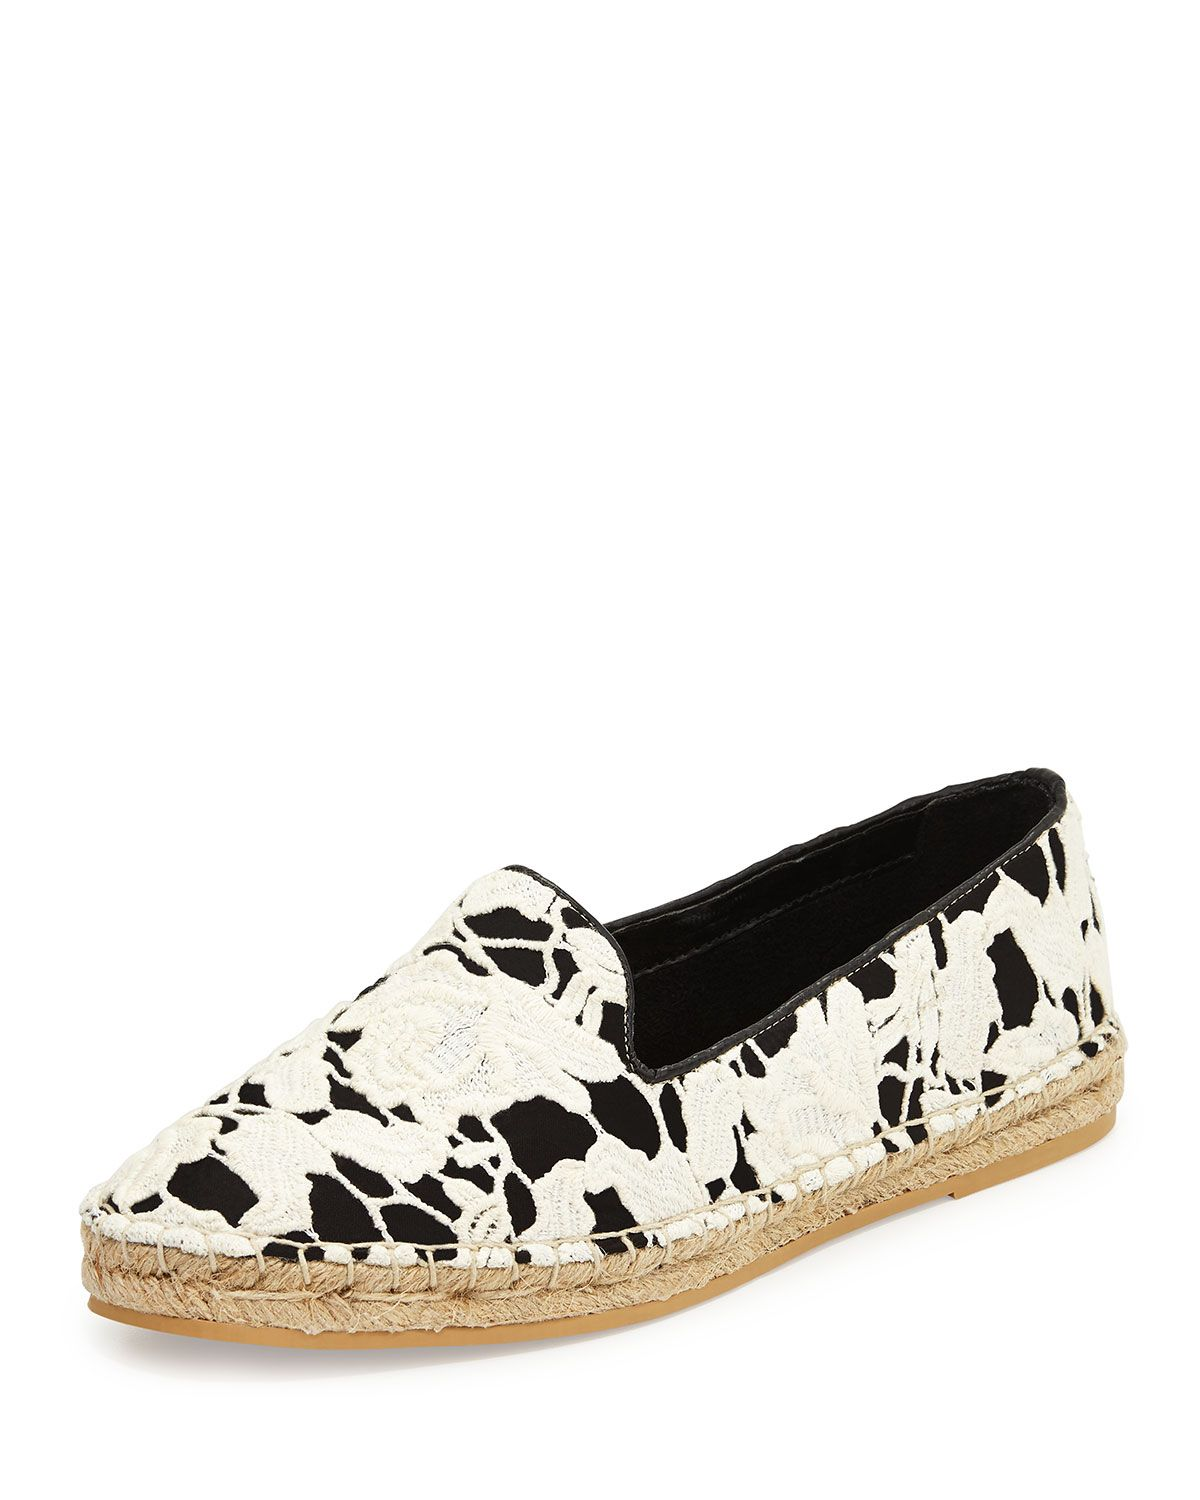 Womens Shoes Cole Haan Palermo Espadrille Black/White Lace